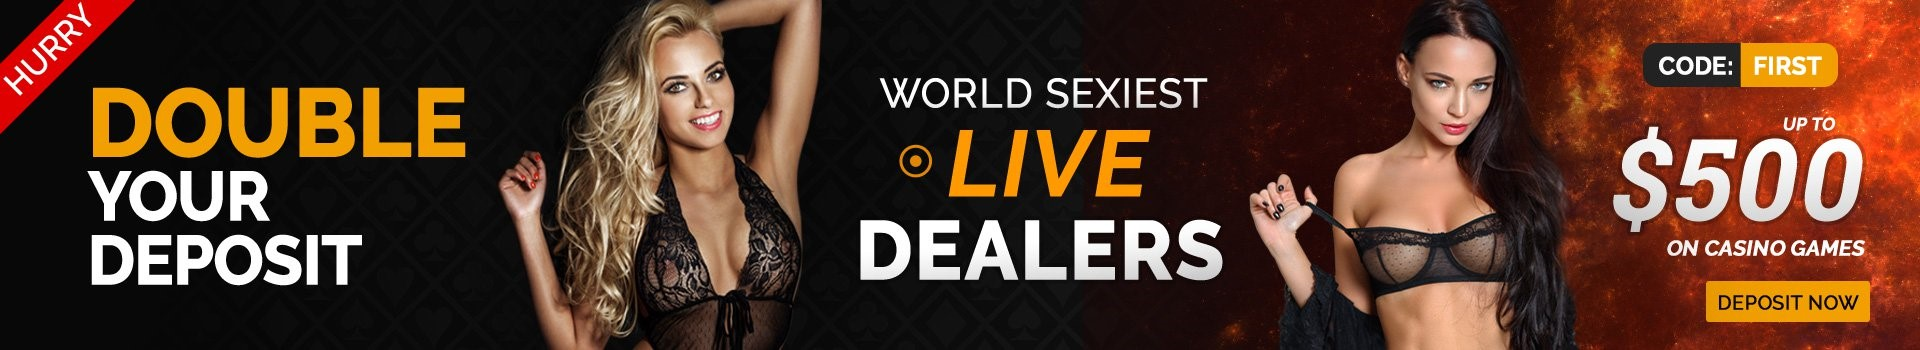 Pornhub Casino Double Your Deposit Banner